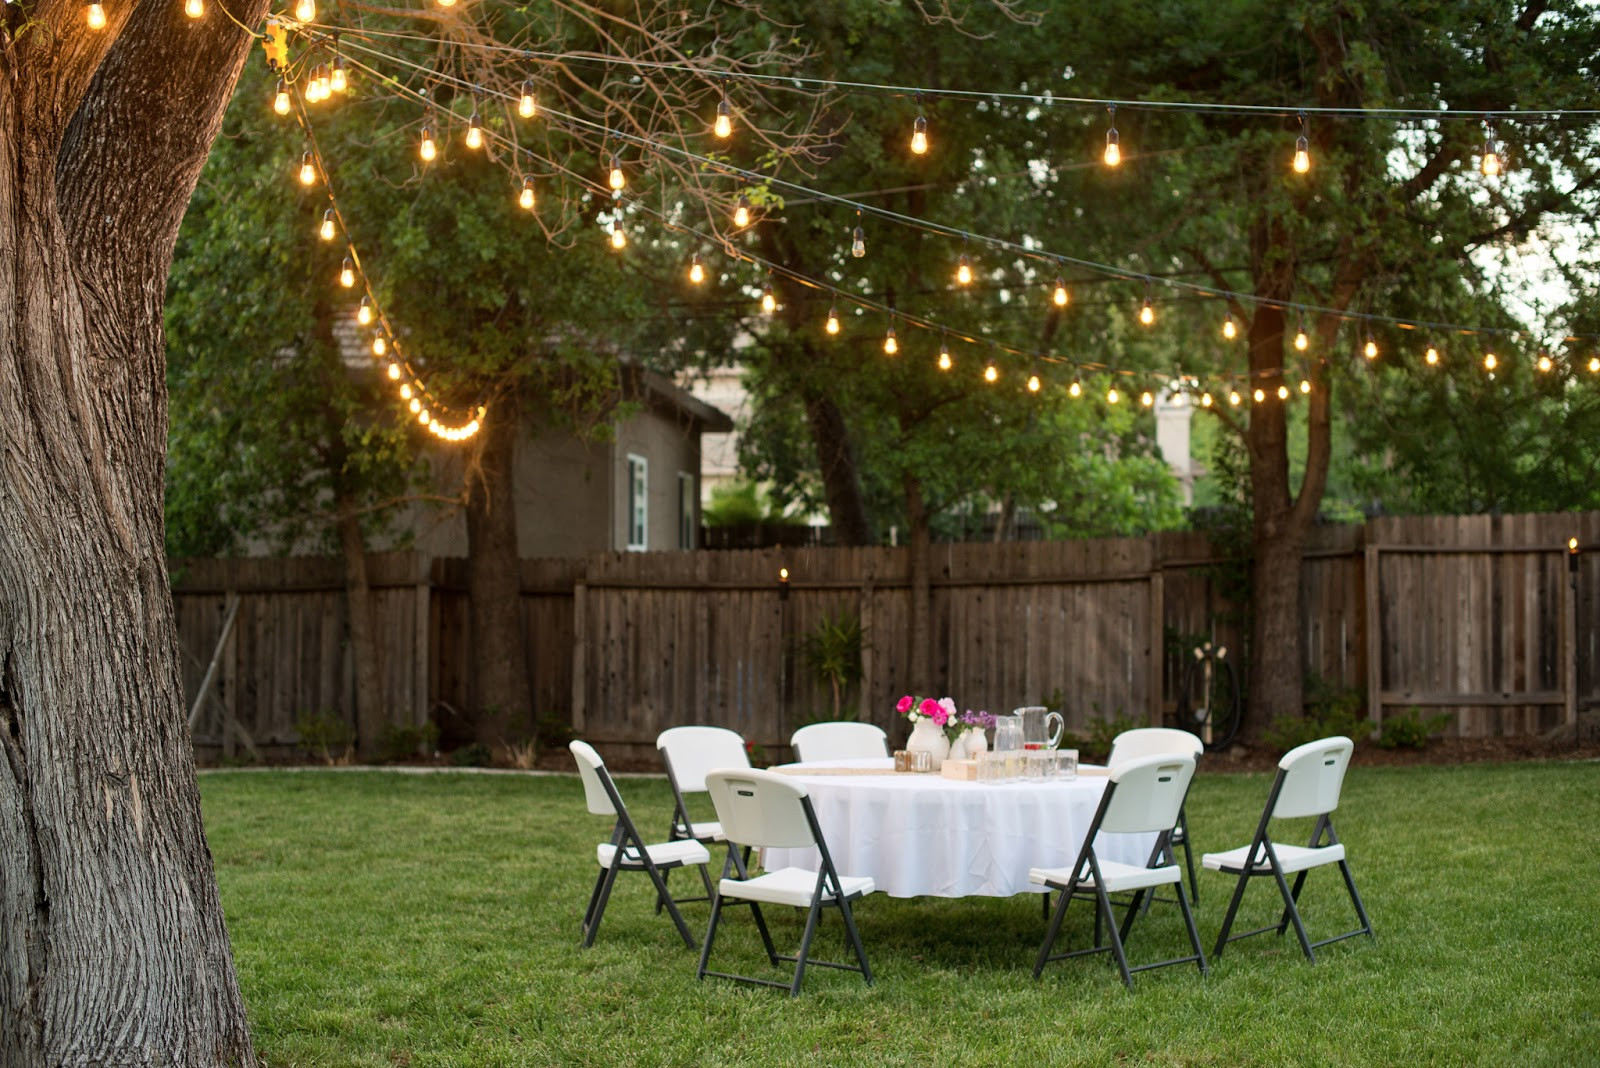 Backyard Party Ideas Adults  Backyard Party Ideas For Adults Image — Design & Ideas